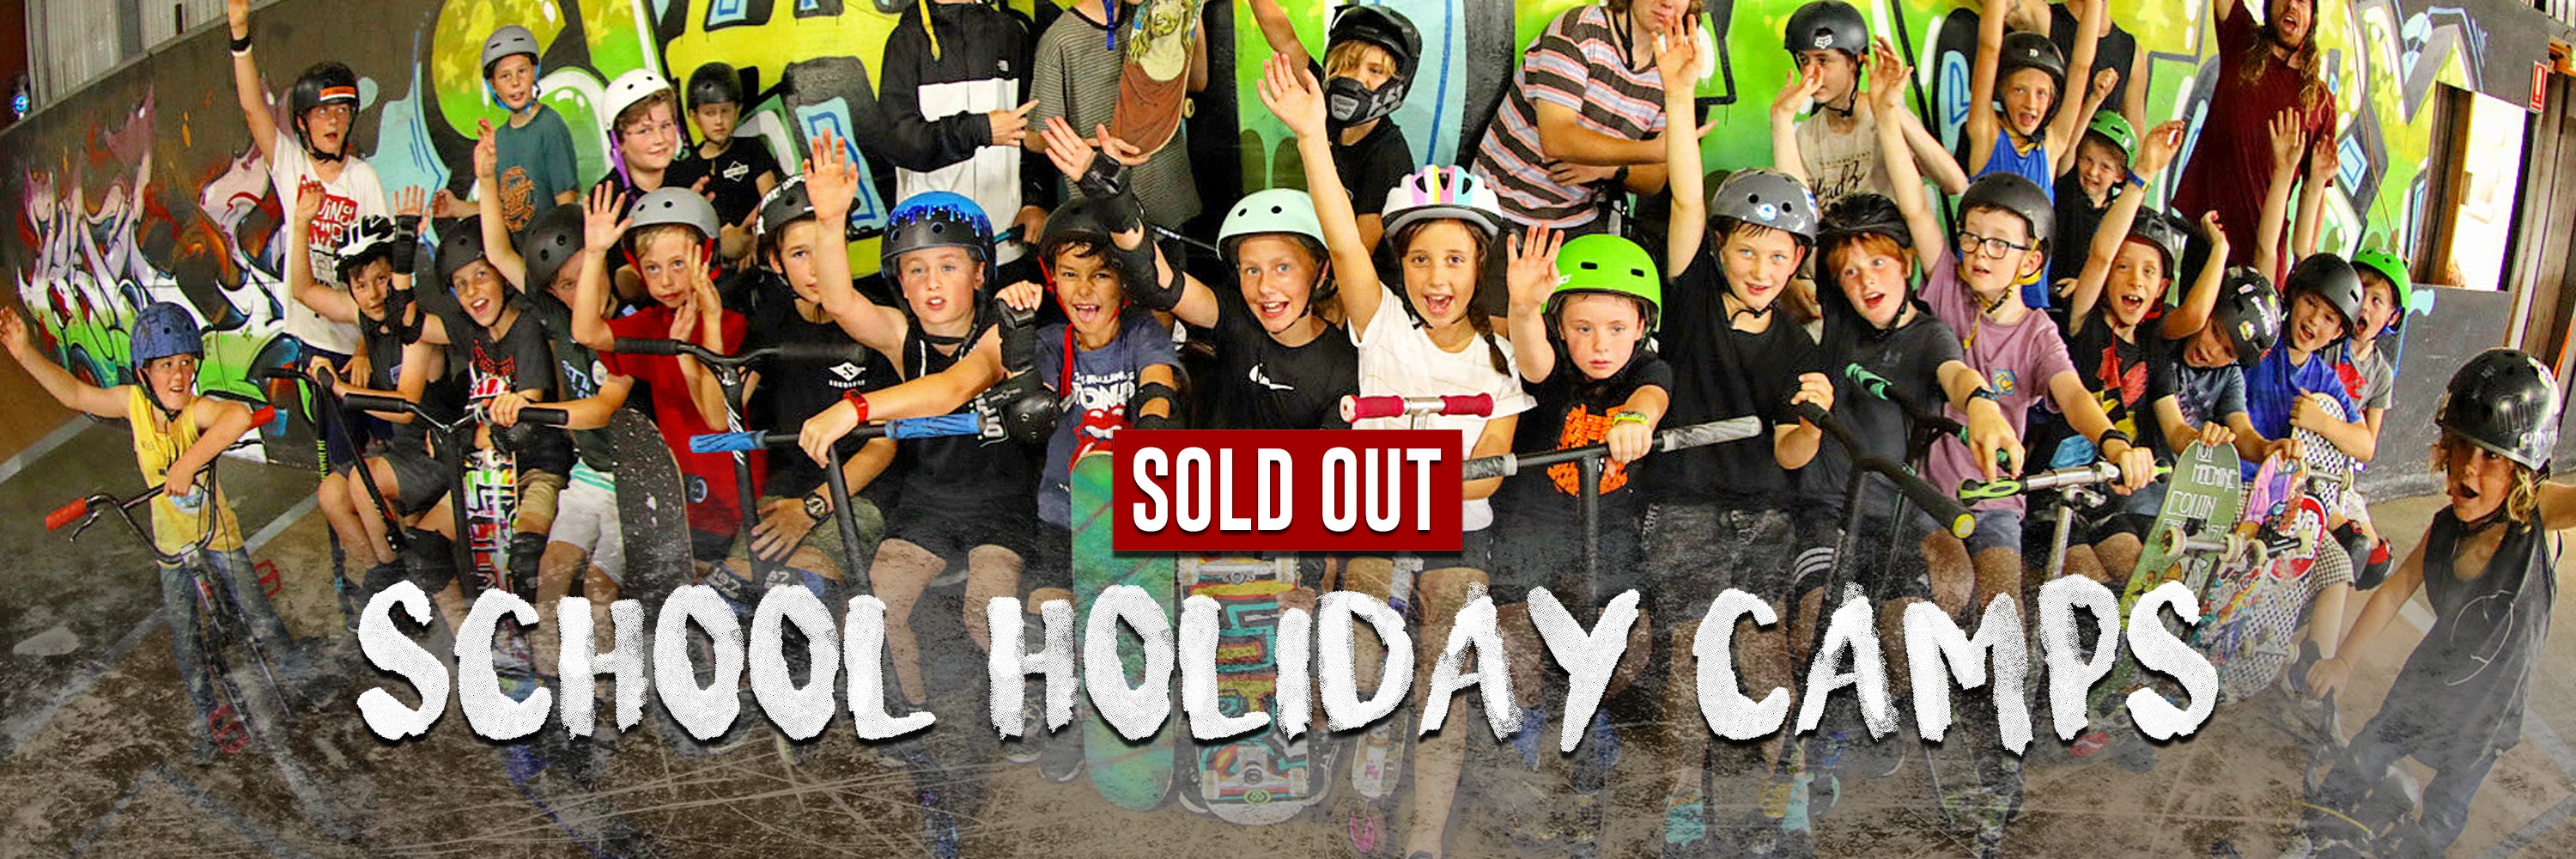 SCHOOL HOLIDAY CAMPS NOW SOLD OUT